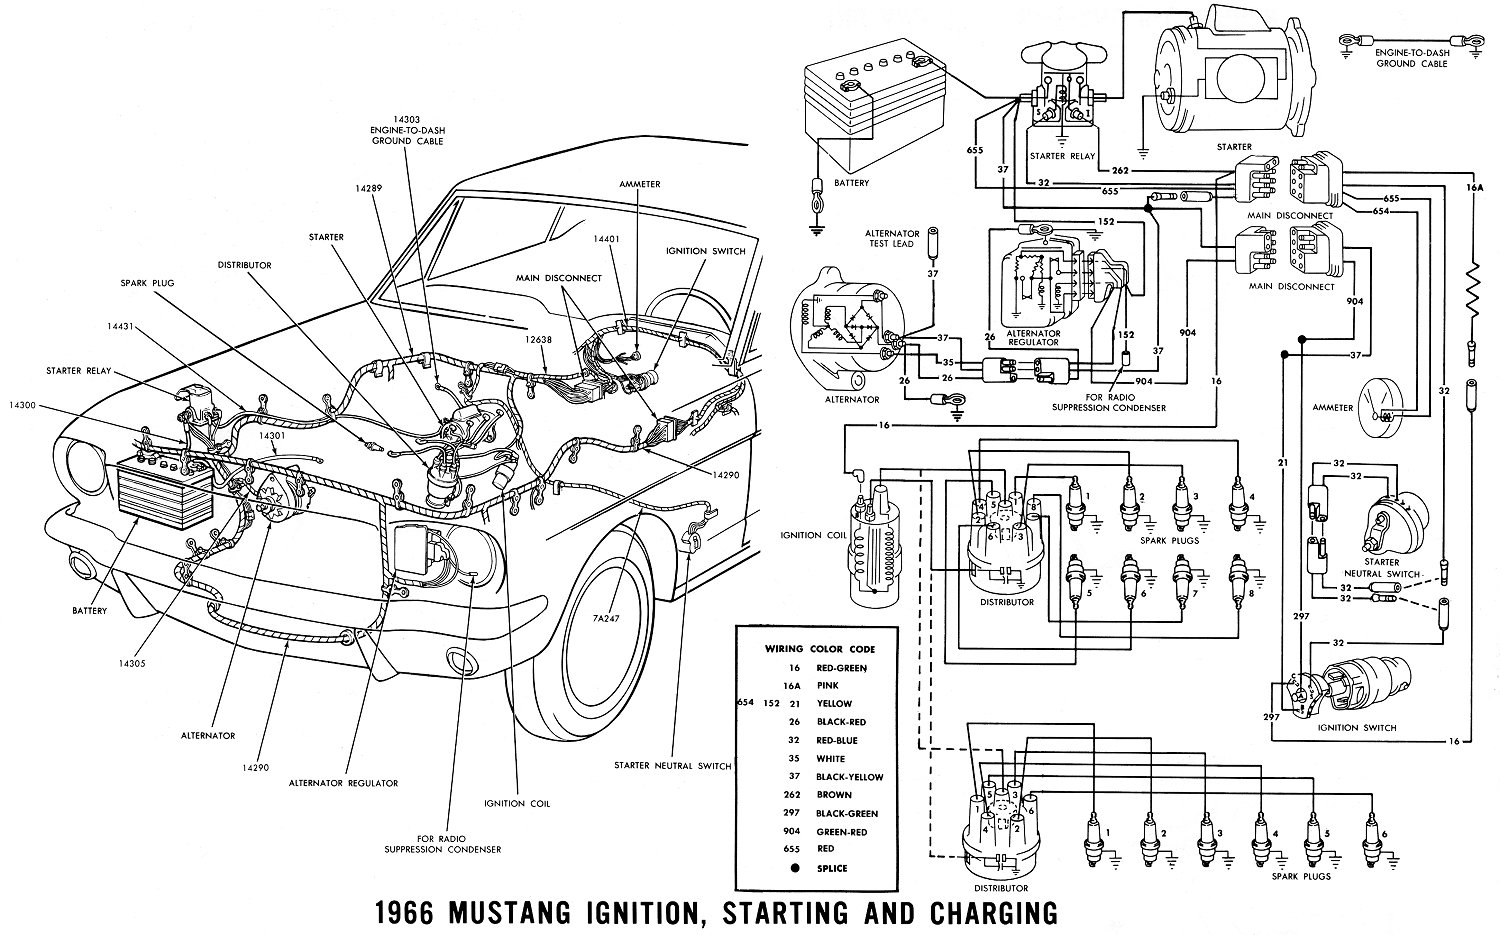 88 ford fuel gauge wiring diagram pdf with Mustang Wiring Diagrams on Mustang Wiring Diagrams further odicis moreover Cadillac Pcm Wiring Diagram 1991 moreover Recuerdos Graduacion Lima Callao as well Mercury Boat Motors Wiring Diagram.